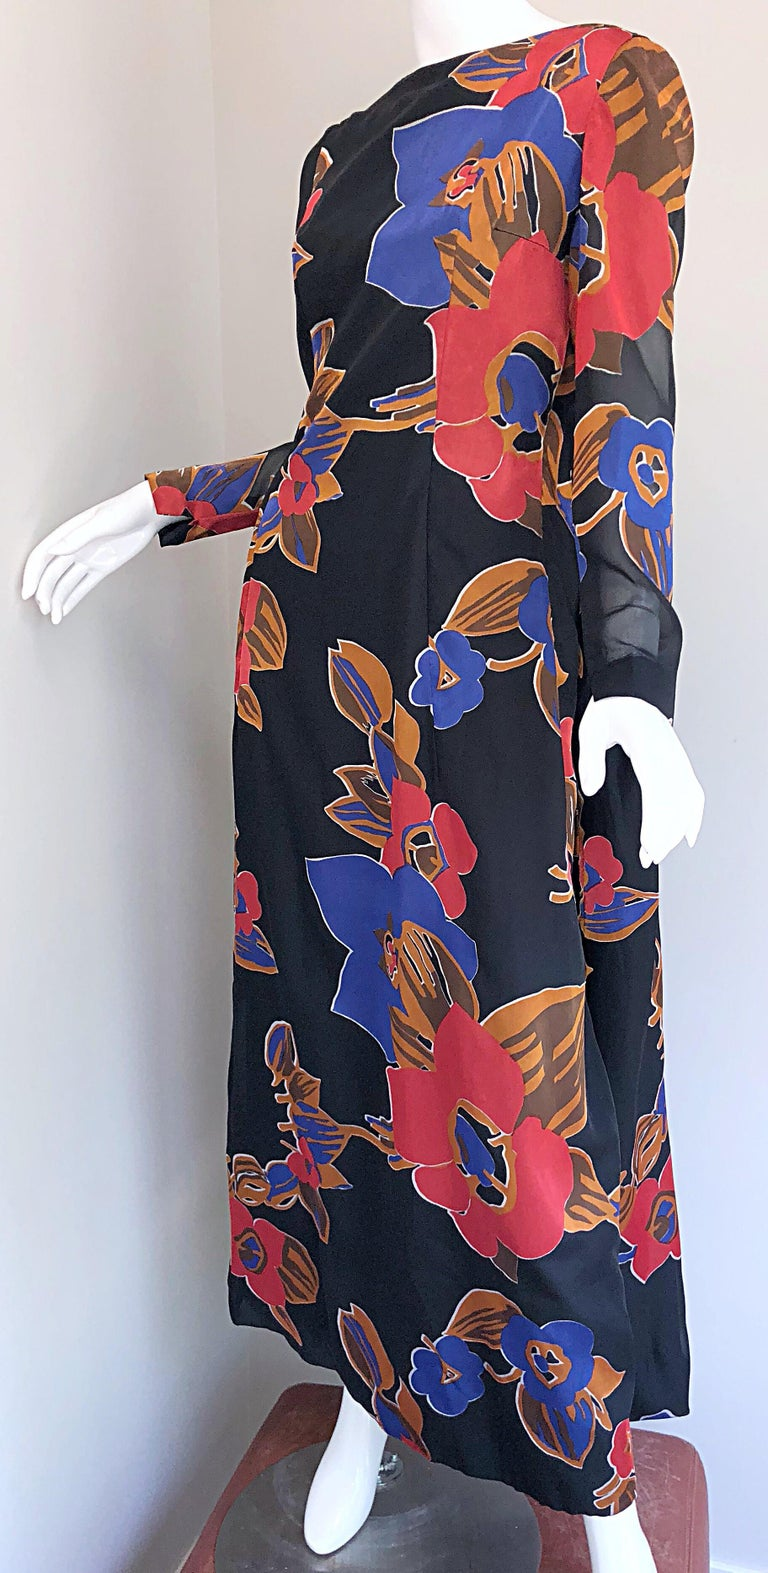 1960s John Boyle Bishop Black + Brown + Red Abstract Trained 60s Gown Maxi Dress For Sale 7